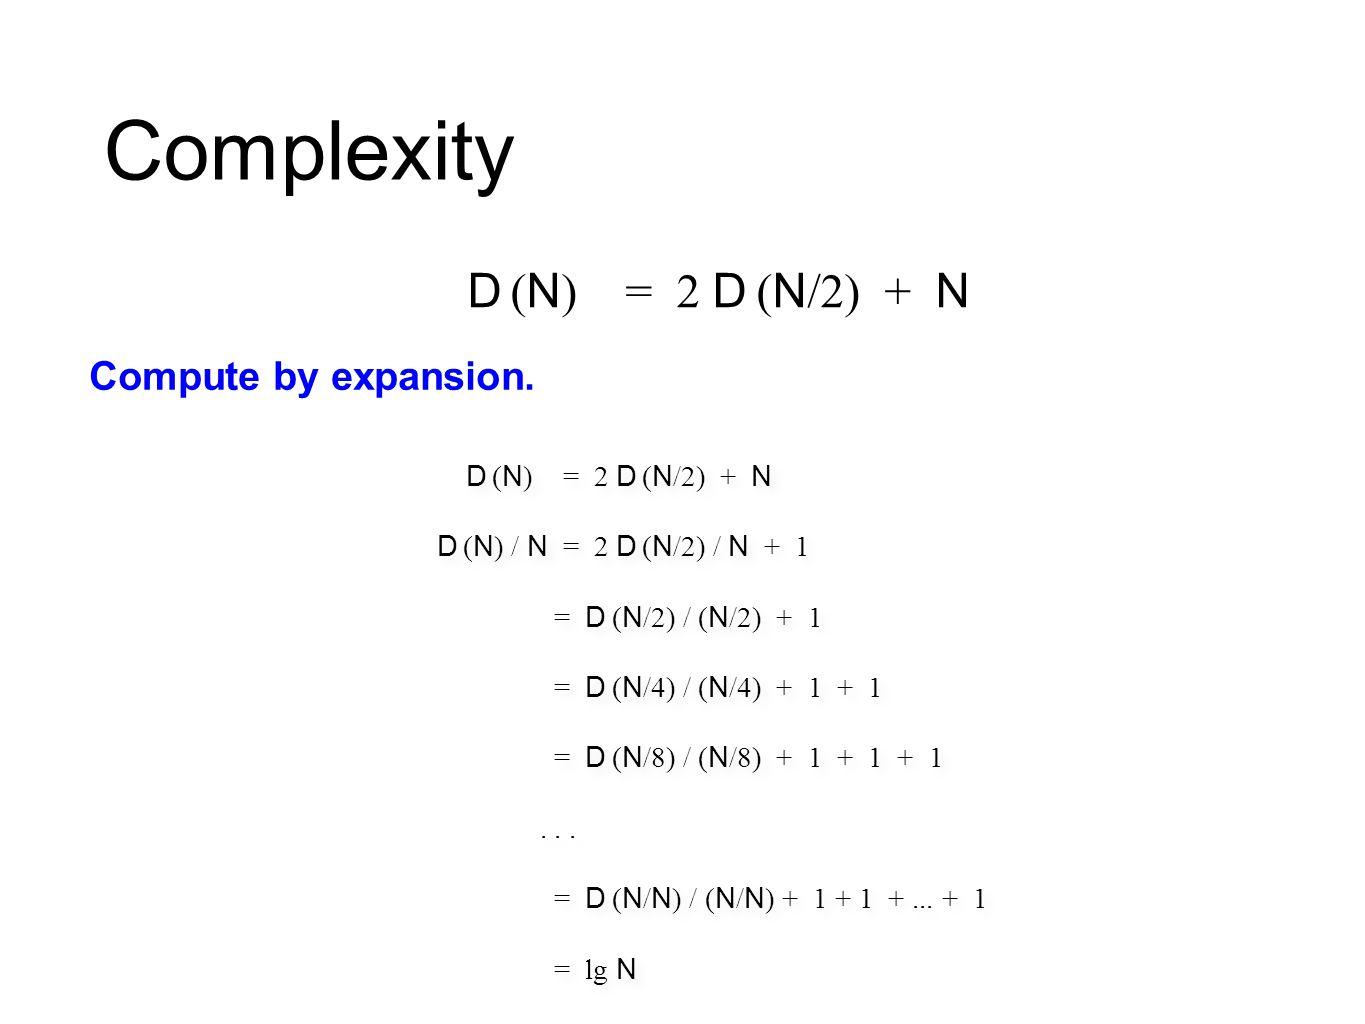 Exercise Download hw4.pdf from our course homepage Due on Oct.